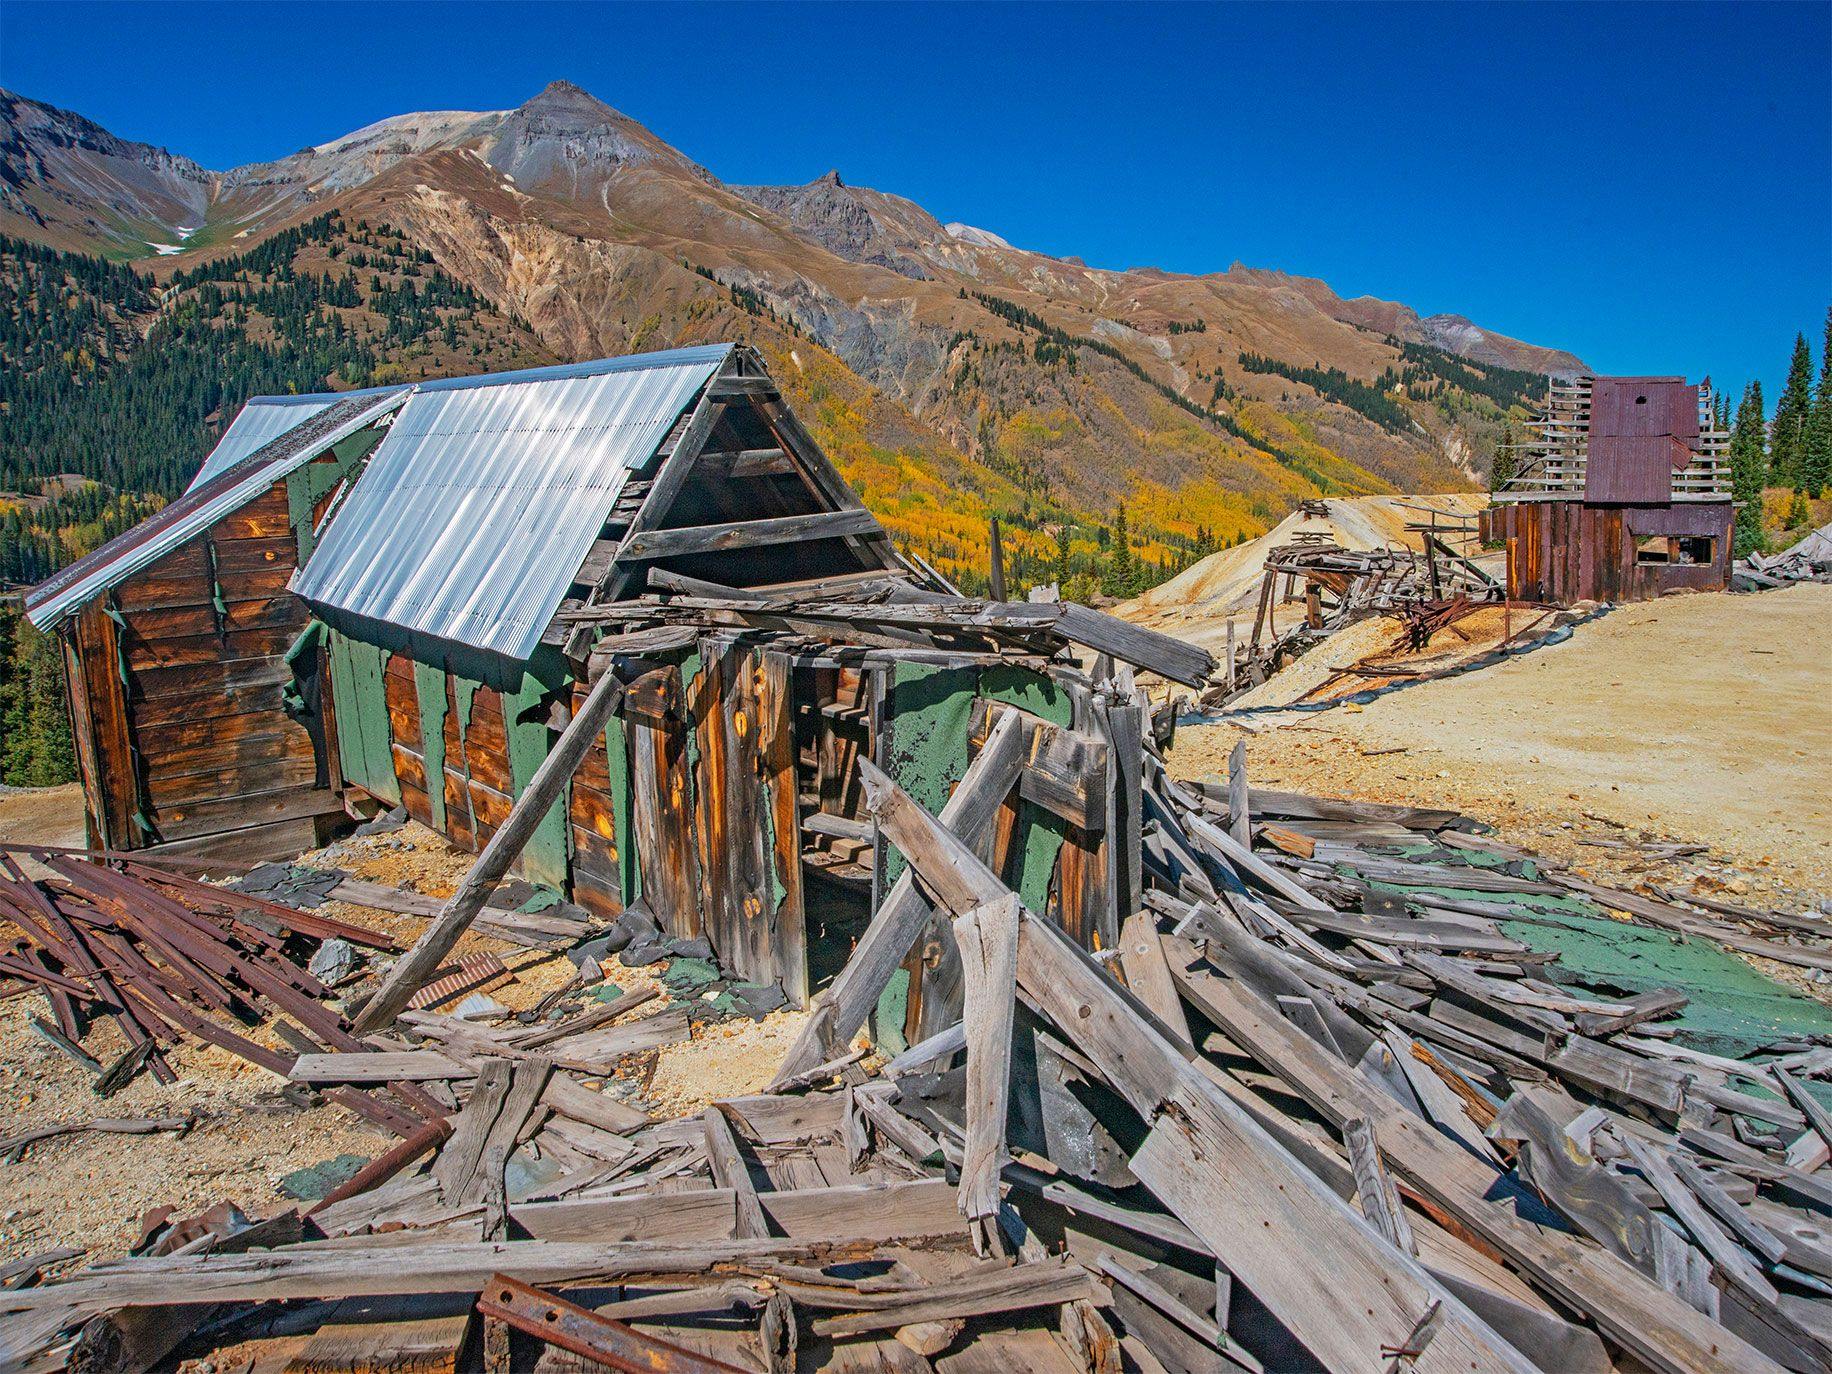 Old mine buildings teeter on mountainsides in the Red Mountain Mining District of southwestern Colorado. Known as the Million Dollar Highway, nearly 40 area mines produced silver during a 10-year boom, which began in 1882 and ended with the Panic of 1893.